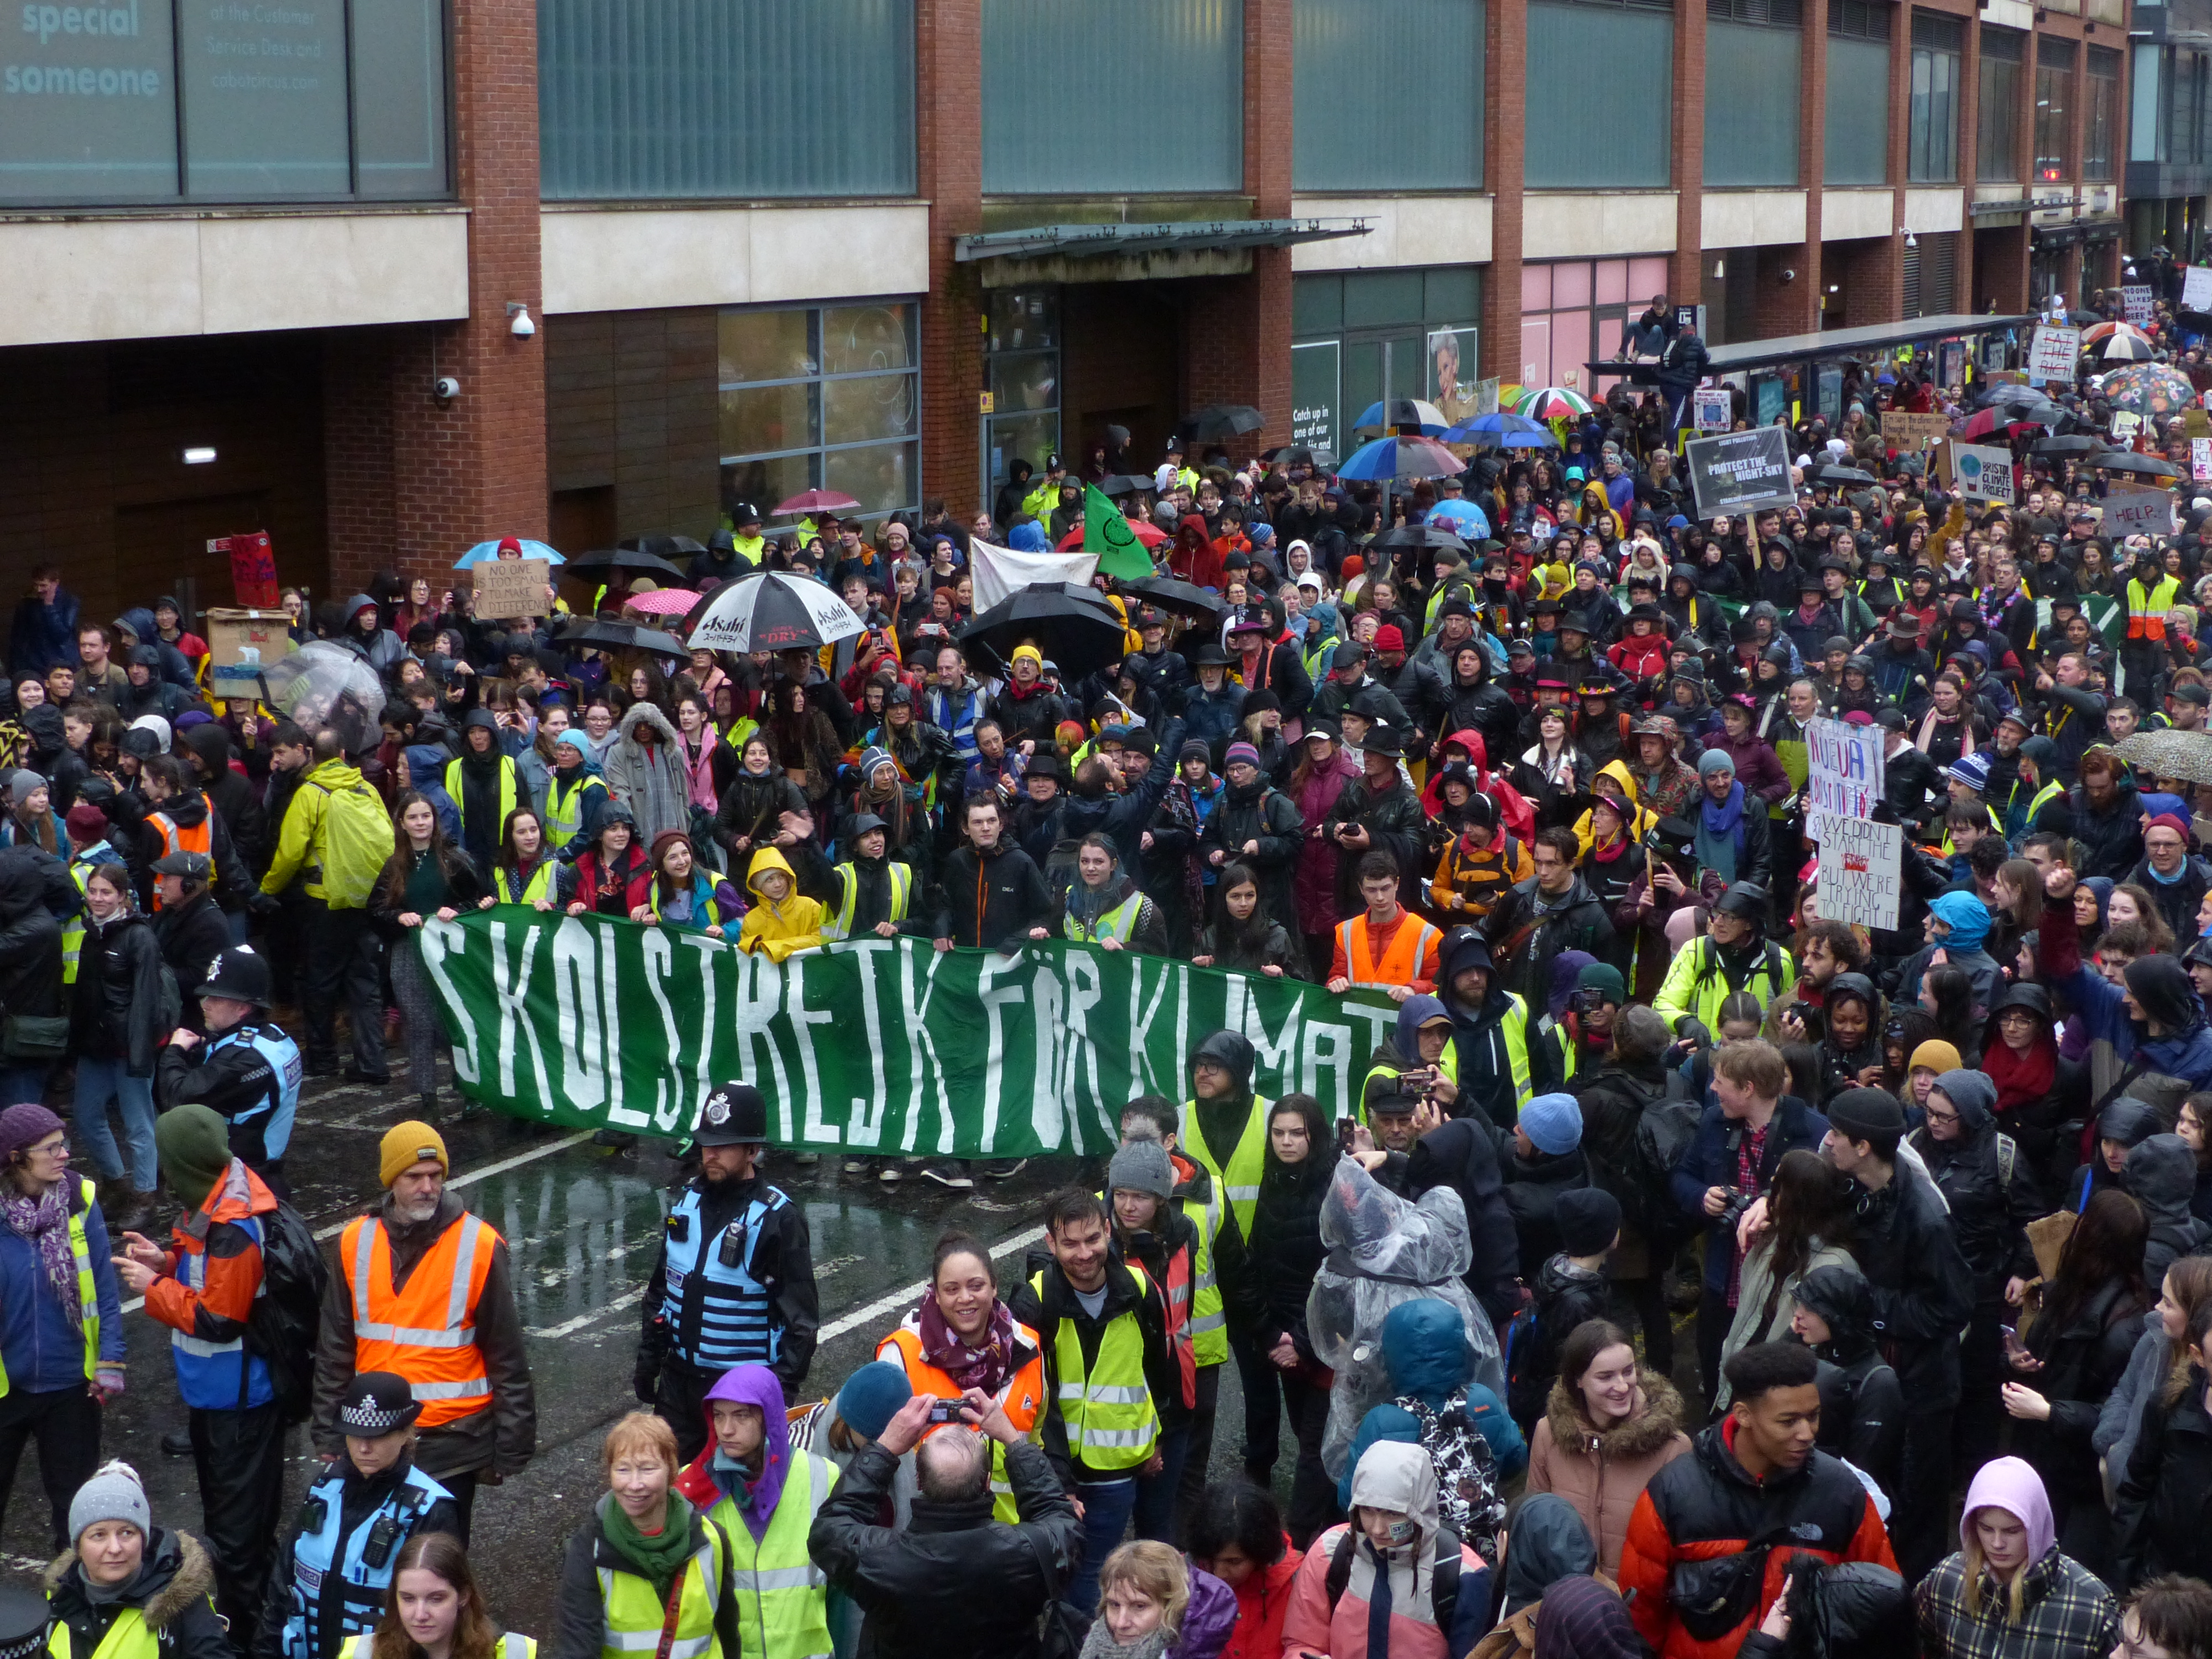 """Long range photo of many hundreds of people marching through Bristol. At their head, a banner bearing the words: """"Skolstrejk For Klimatet"""" as per Greta Thunbergs School Strike for Climate."""